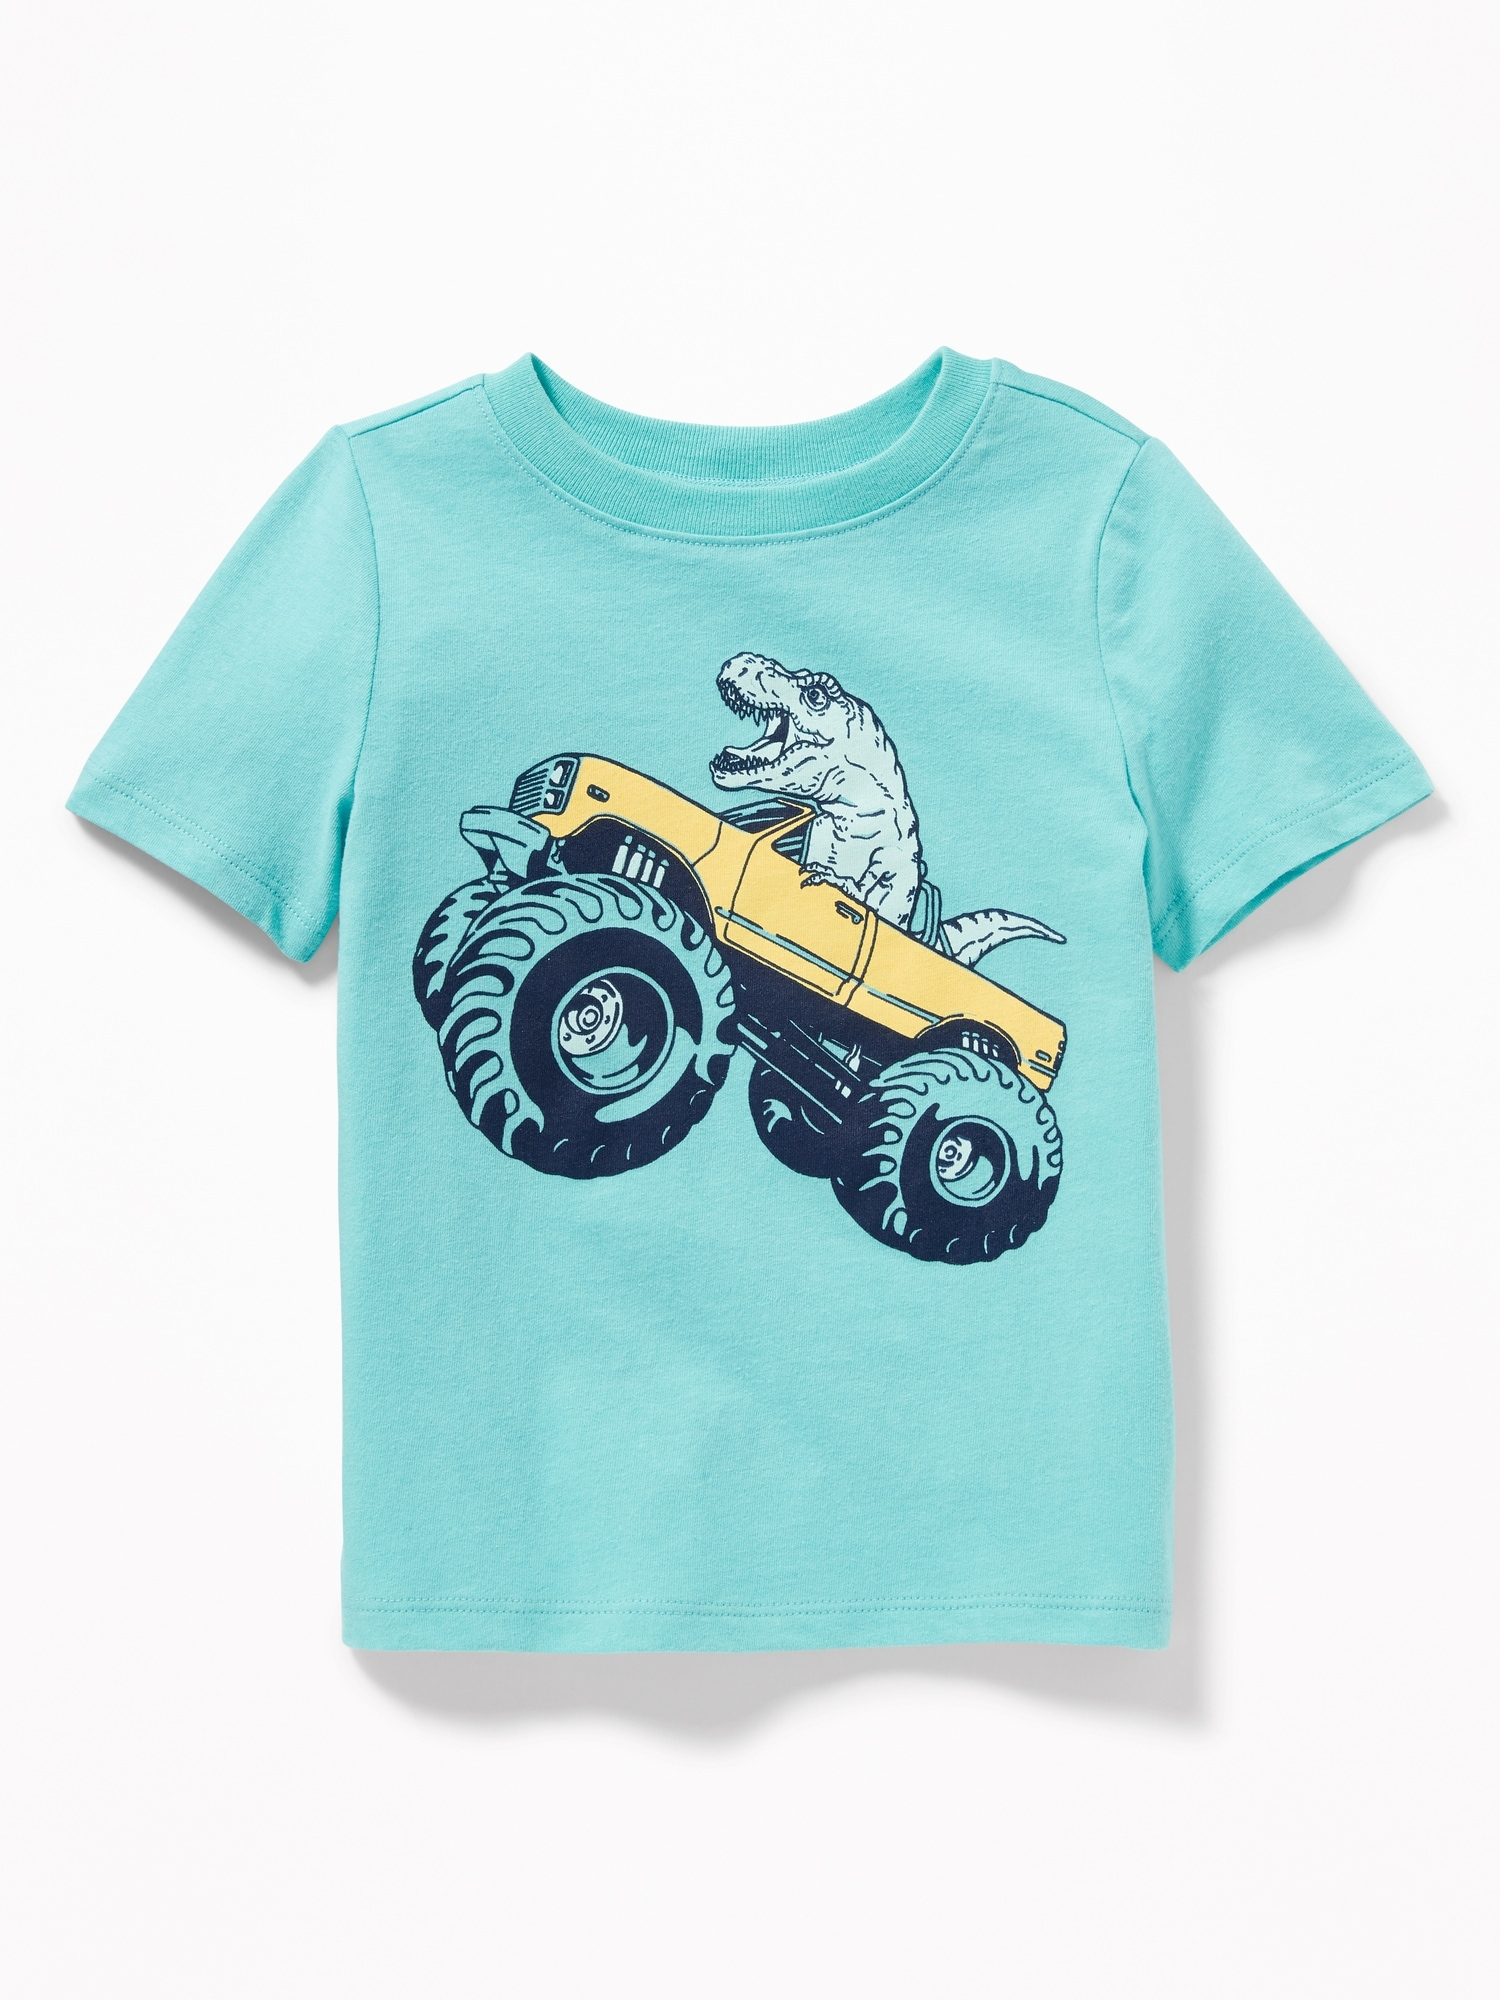 1257976d7c069 Graphic Crew-Neck Tee for Toddler Boys